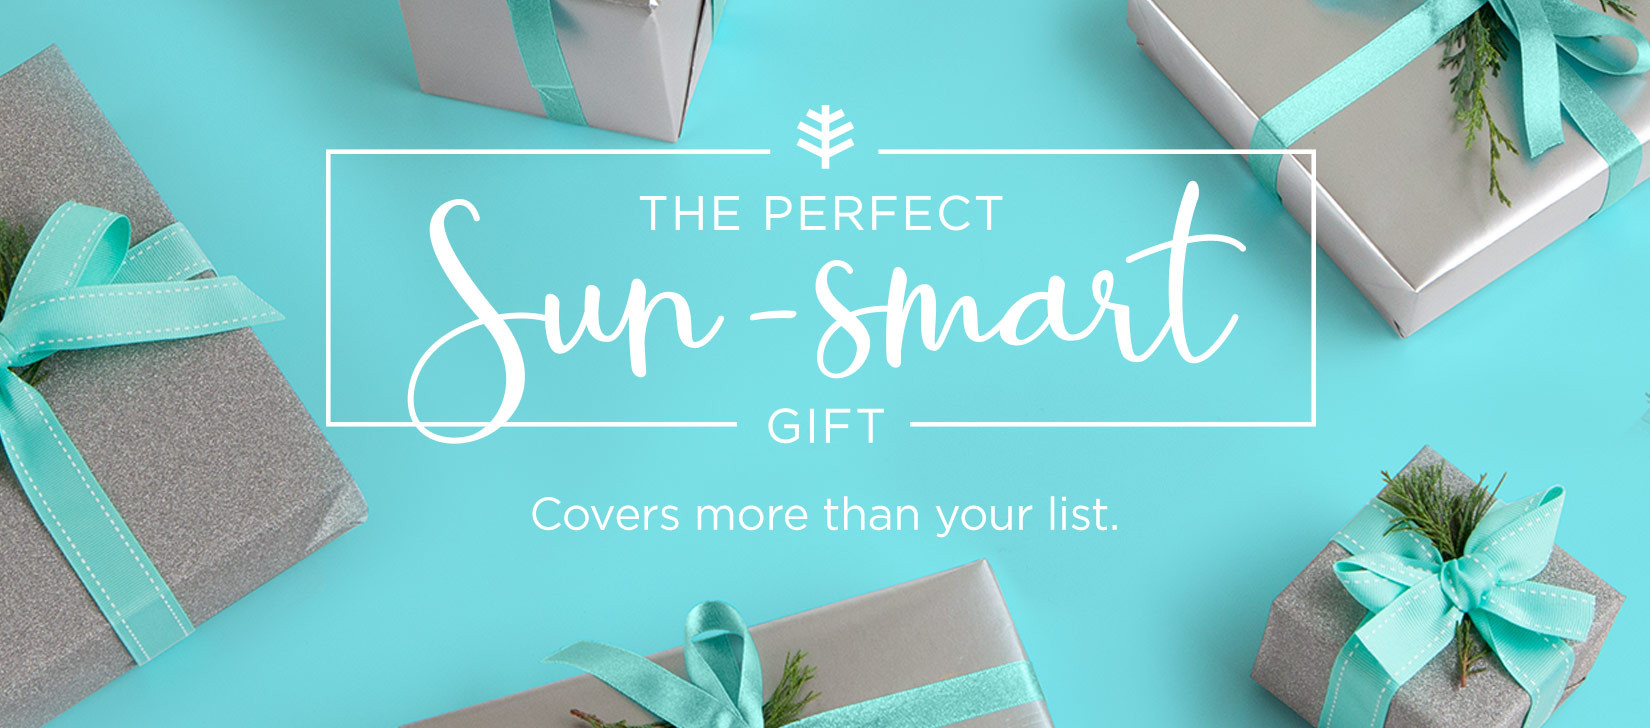 The perfect Sun-Smart gift, Covers more than your list